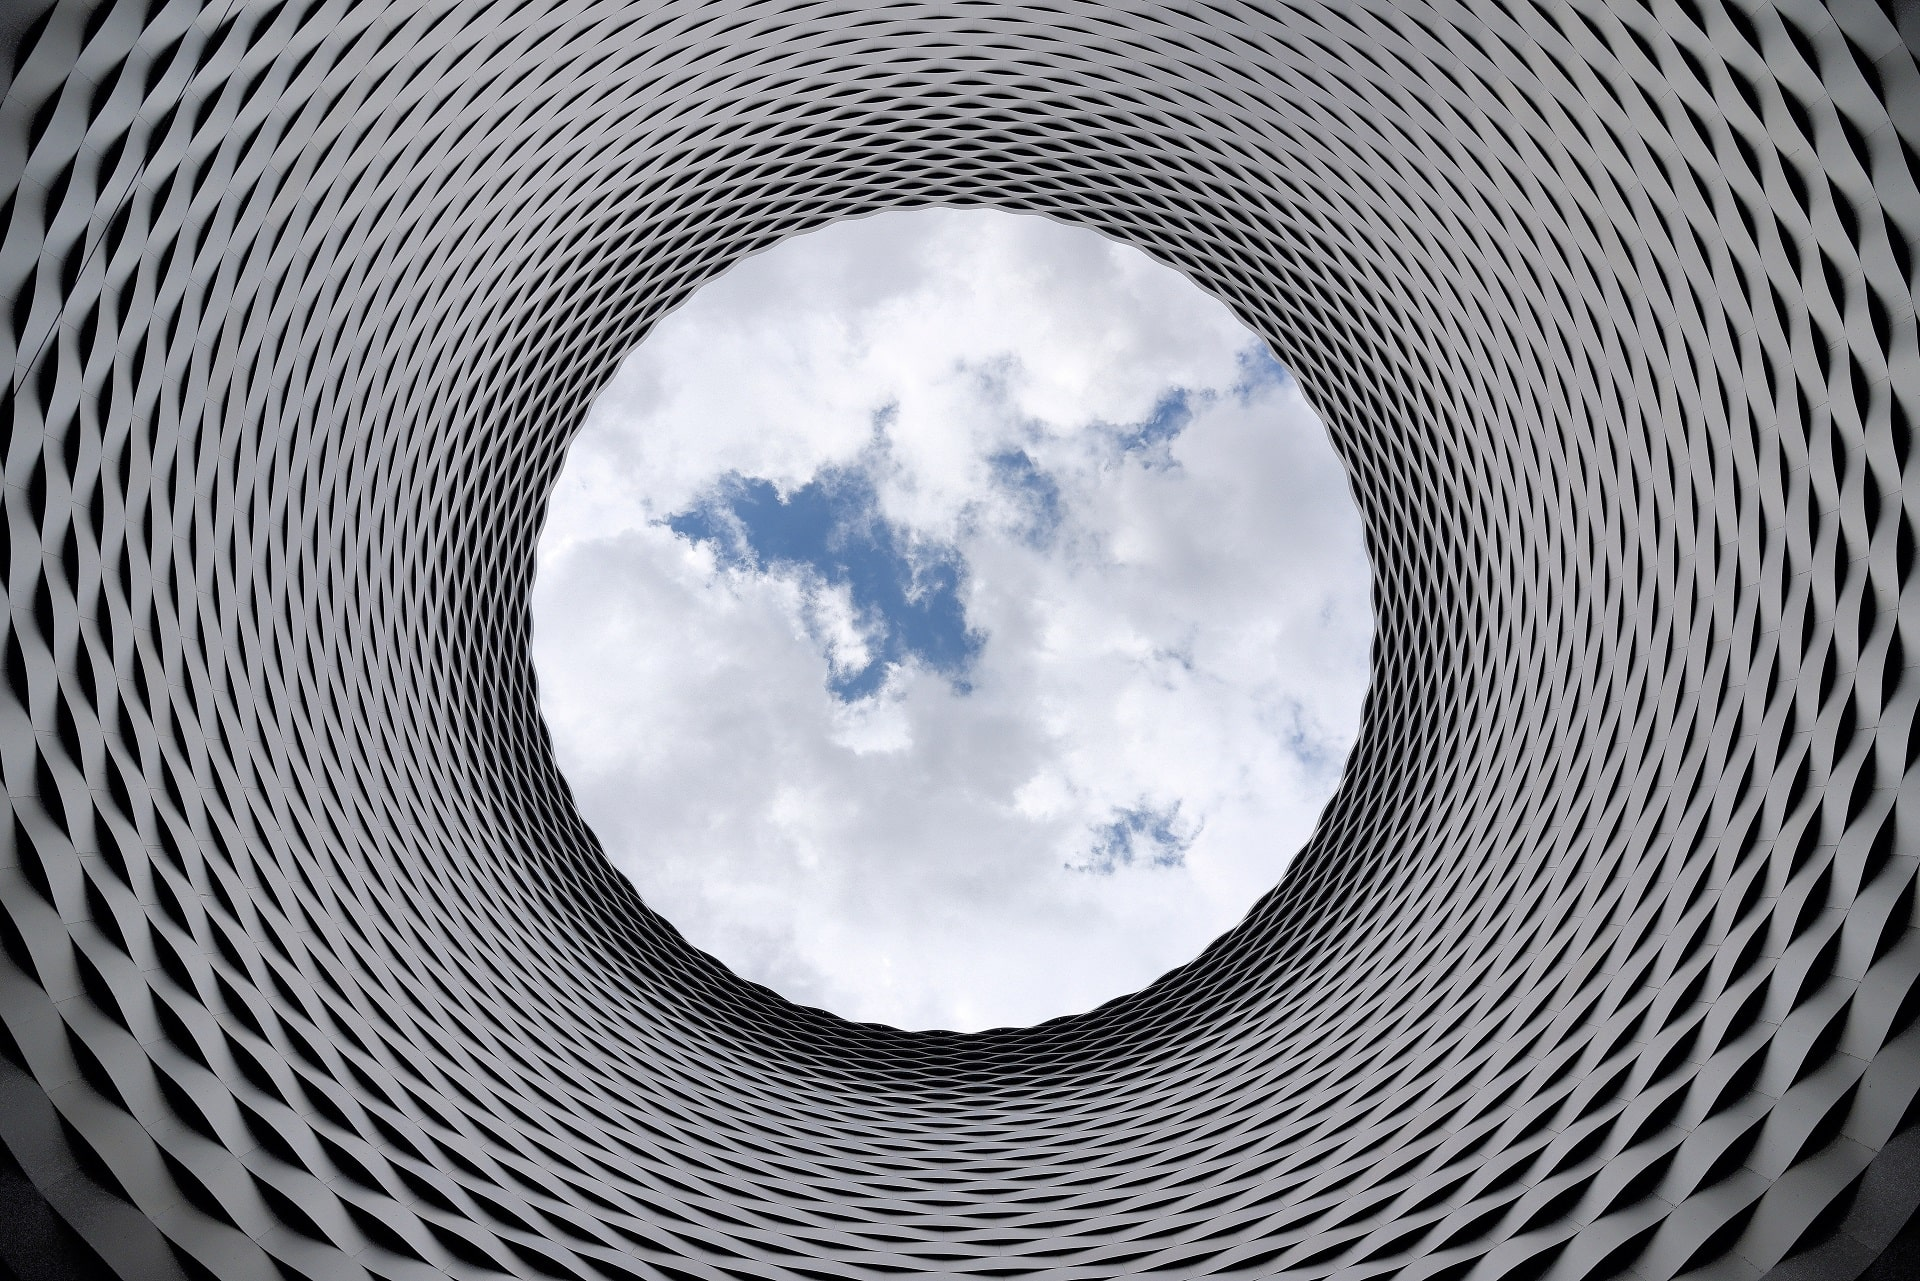 Cloud Services in San Jose, CA--represented by a view of clouds through a cylindrical sculpture.